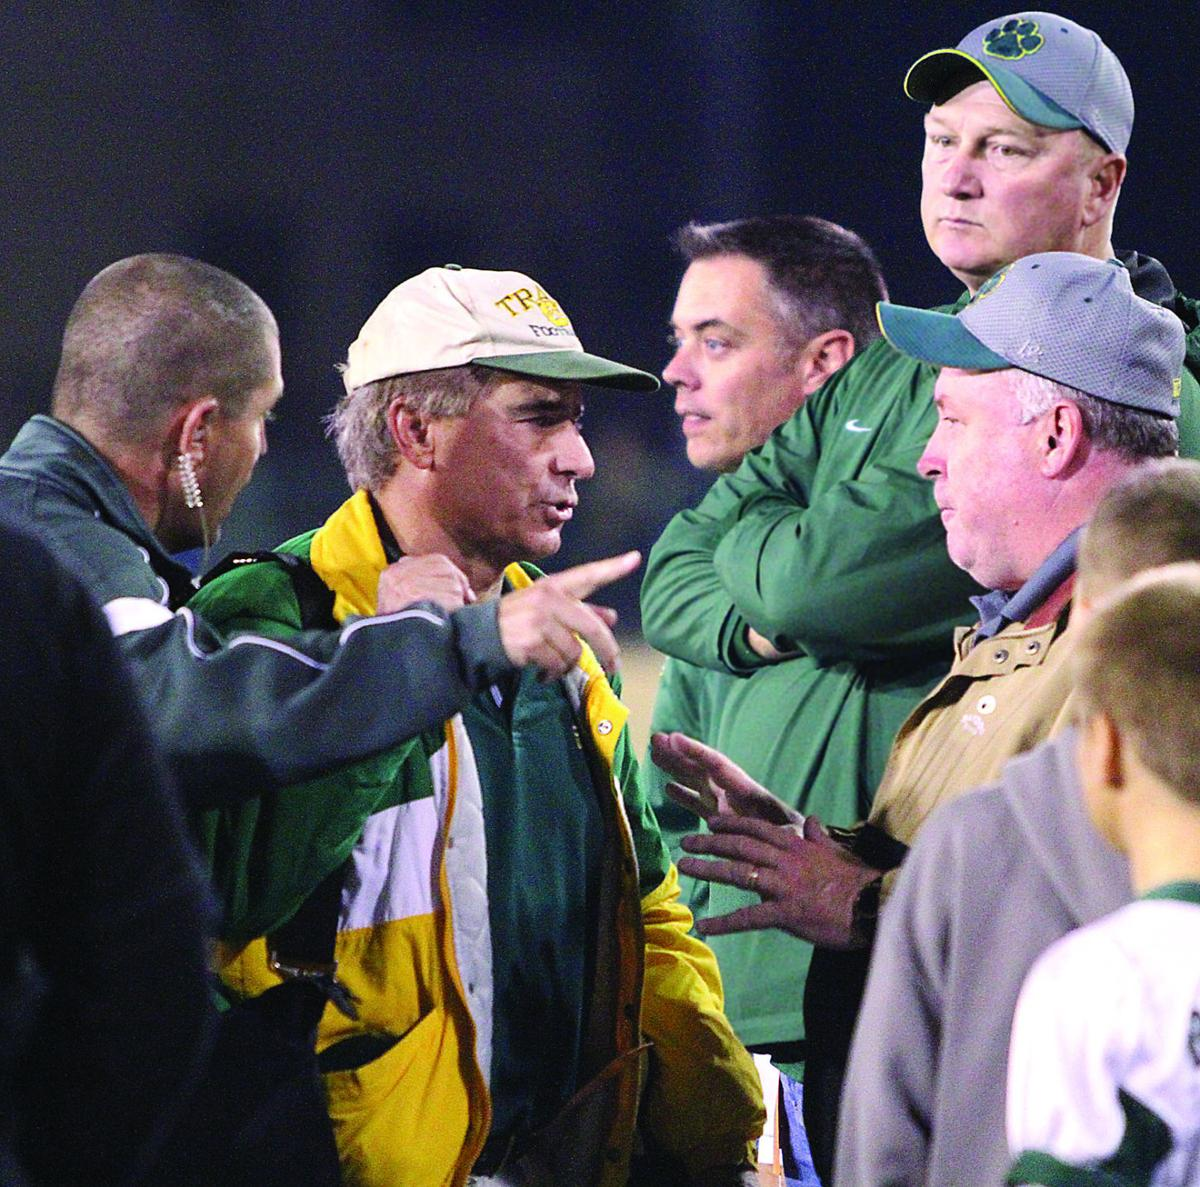 Bulldogs team doctor ejected